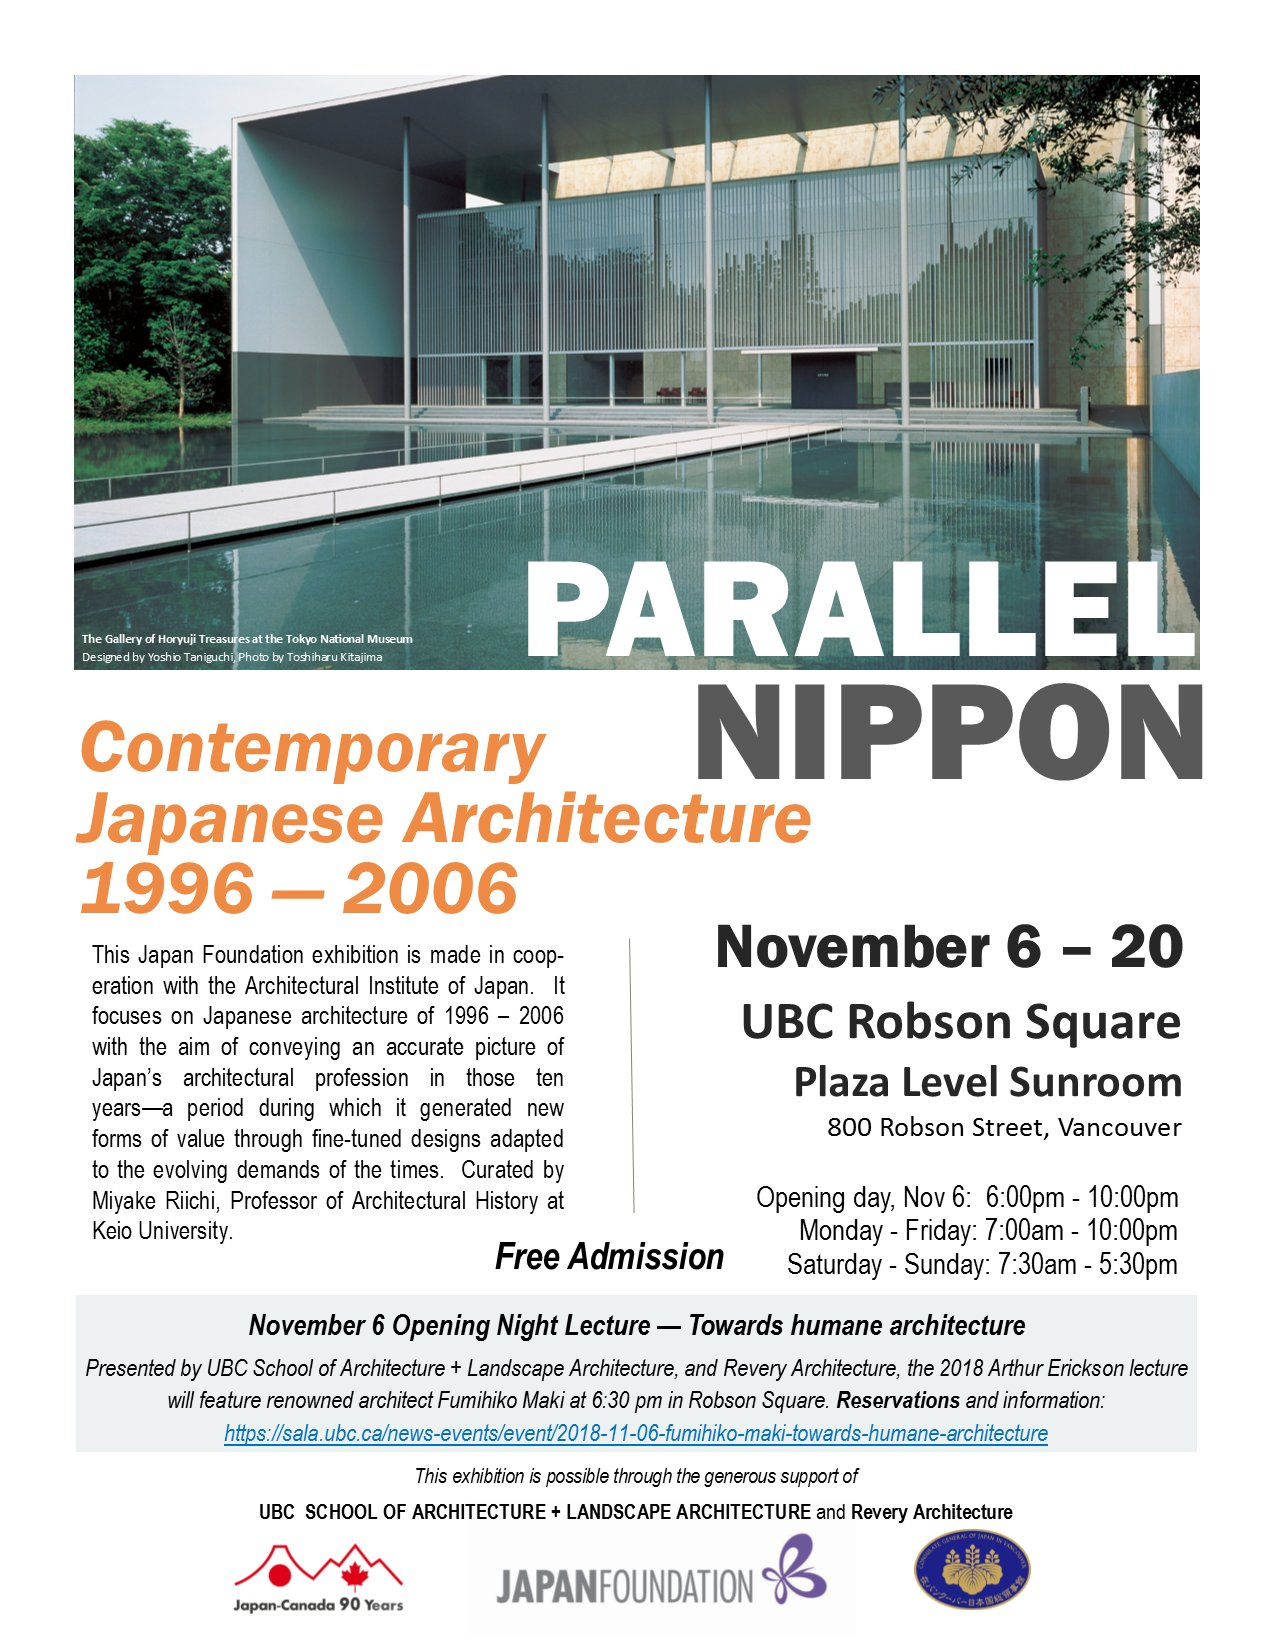 PARALLEL NIPPON: Contemporary Japanese Architecture 1996 – 2006